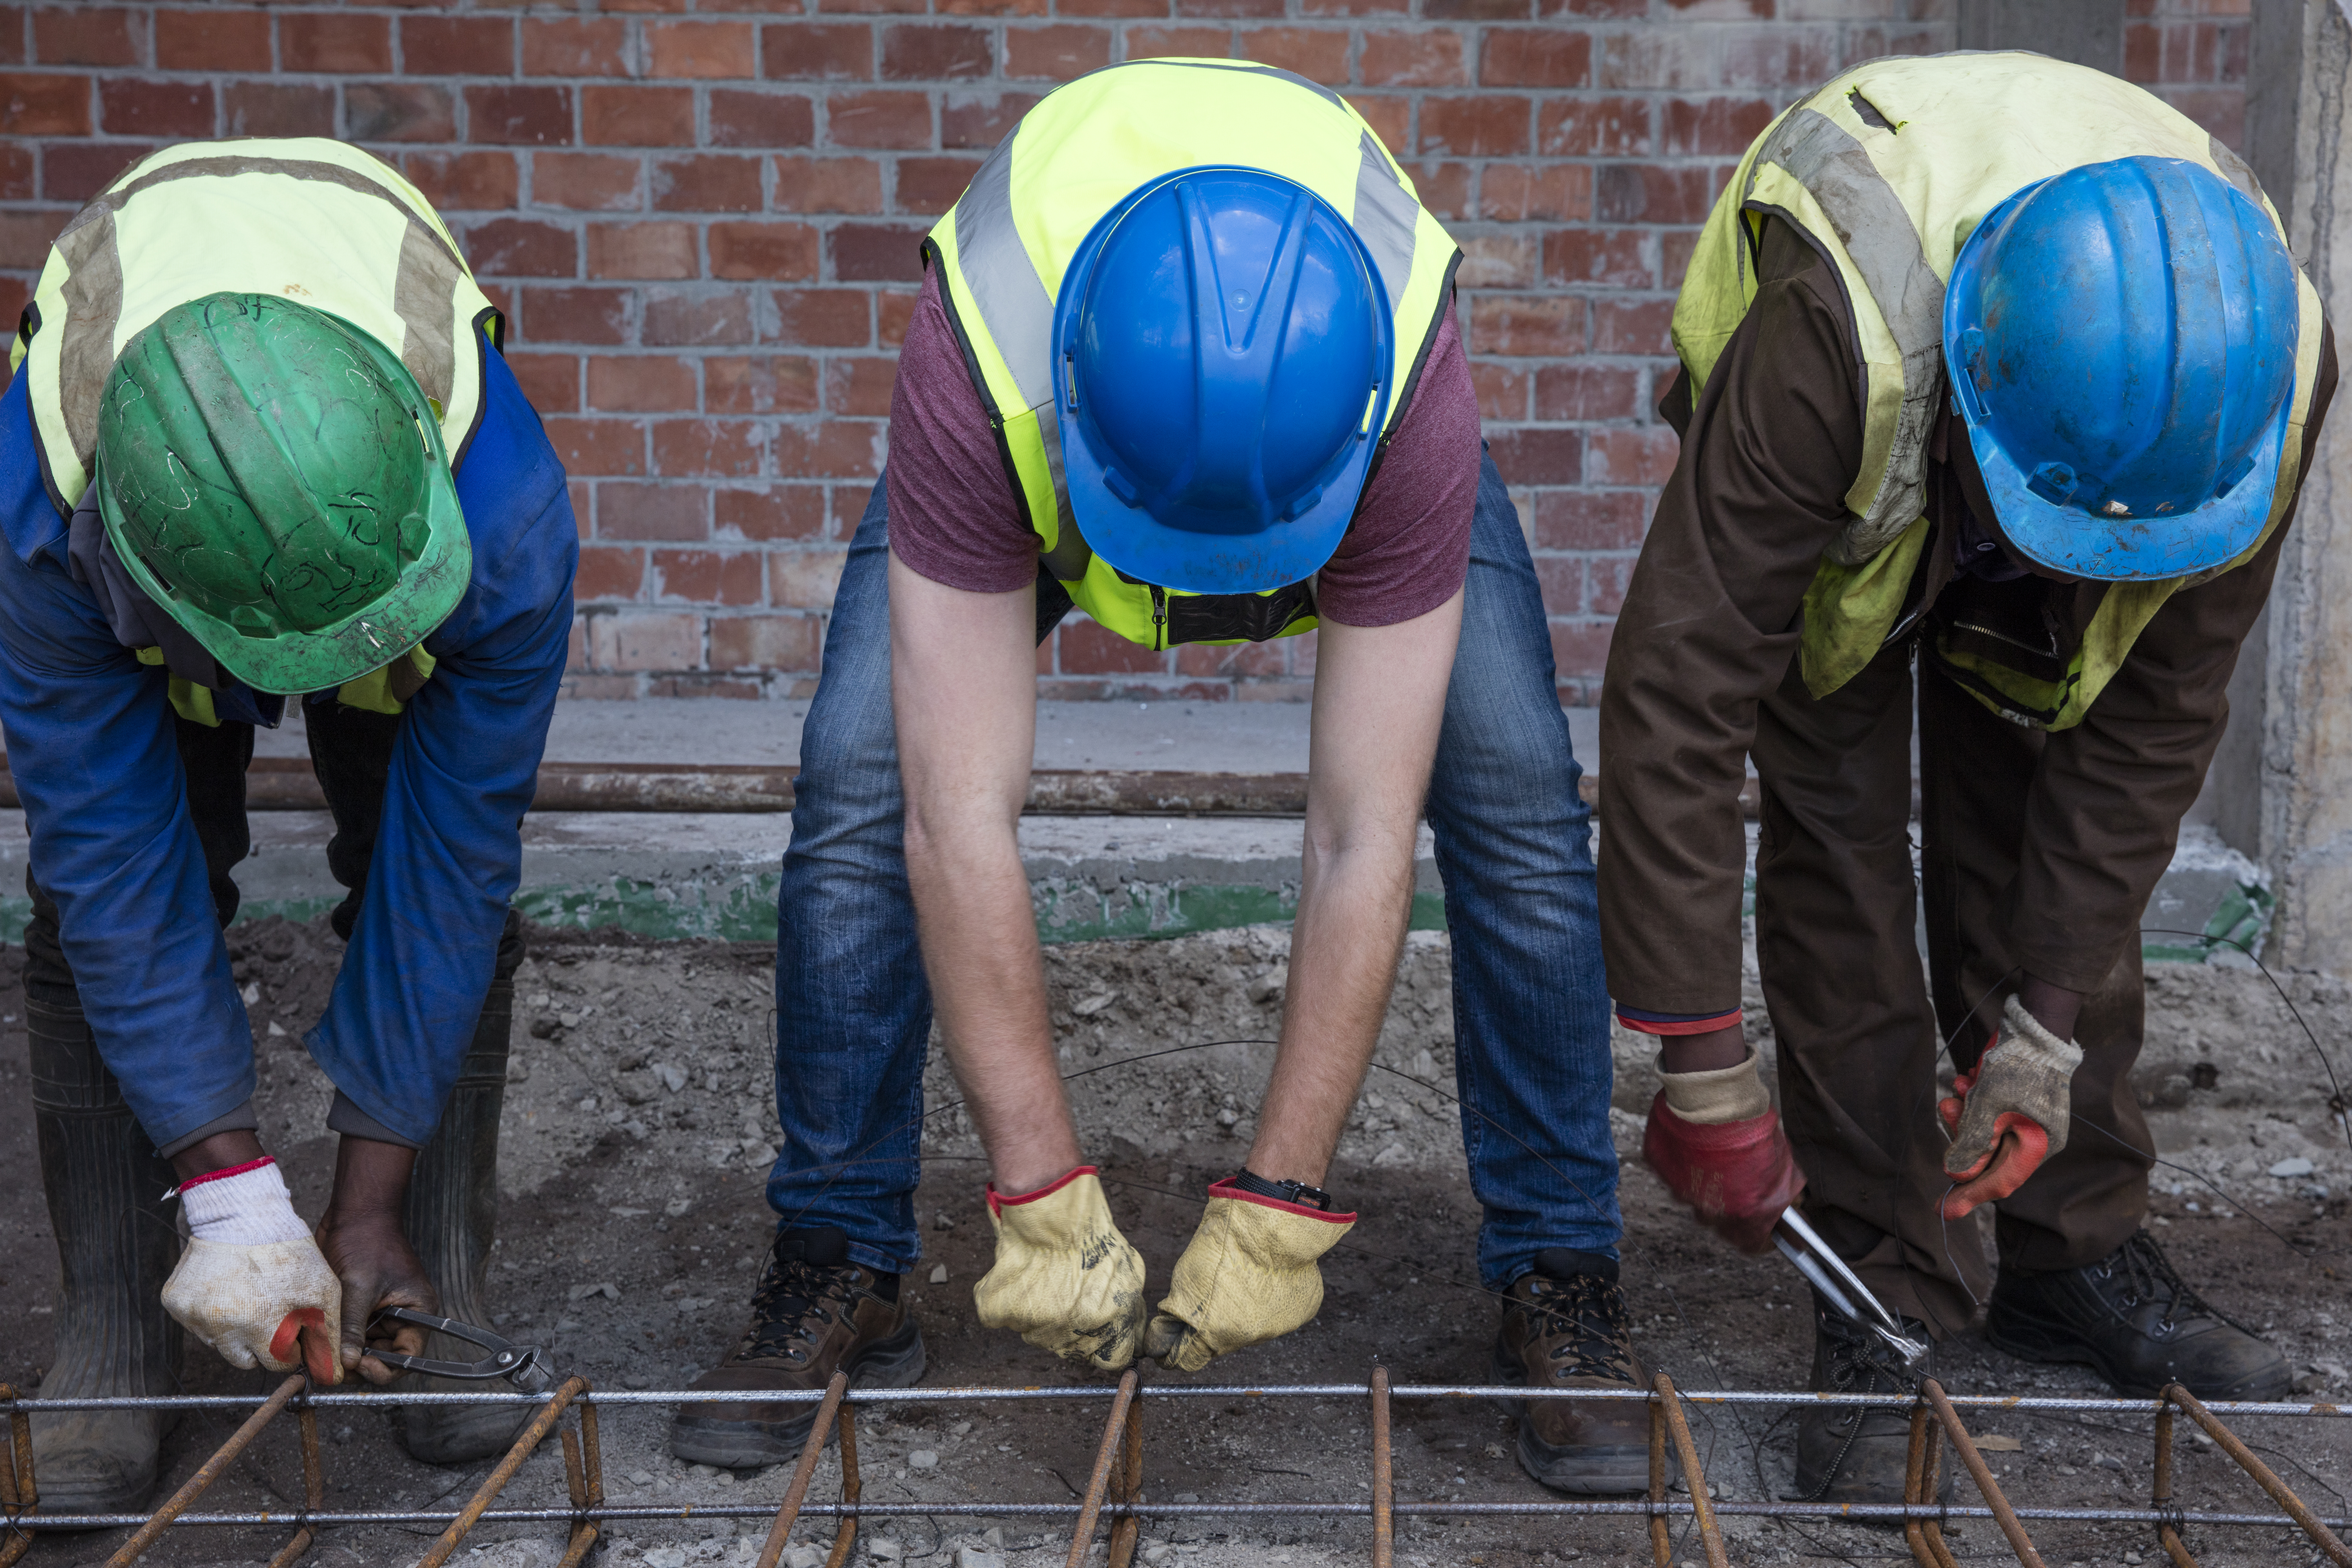 Construction workers on a construction site assembling reinforcing steel